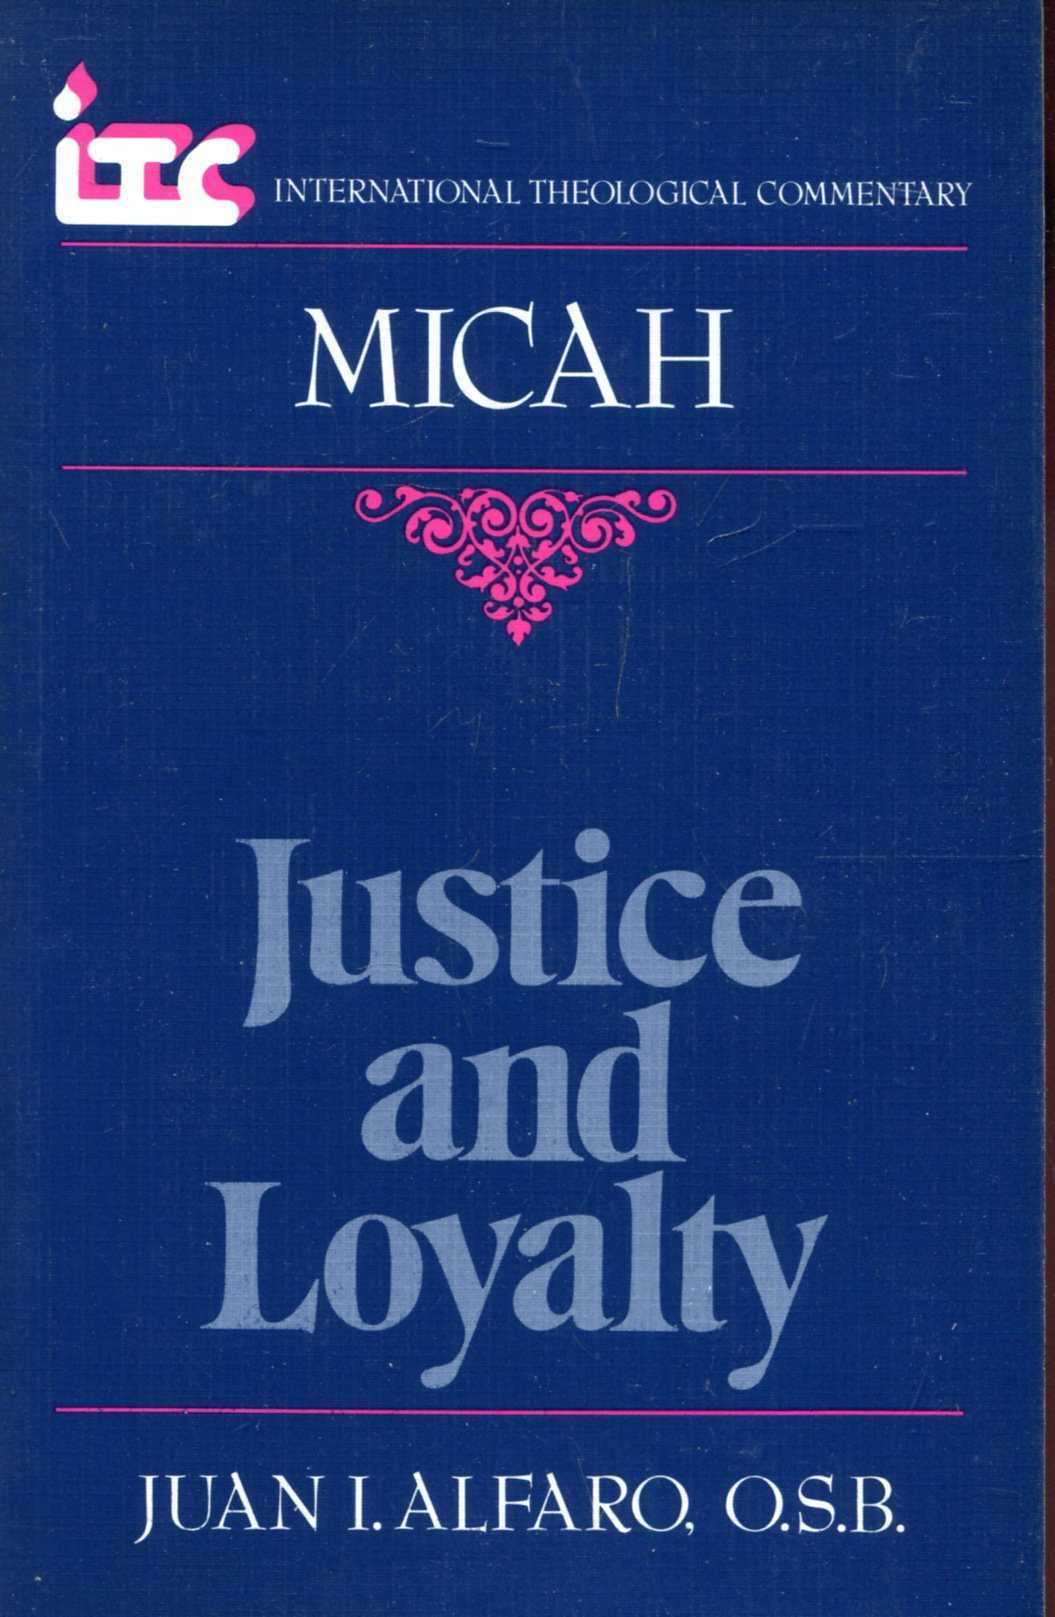 Image for Justice and Loyalty : A Commentary on the Book of Micah (The International Theological Commentary on the Old Testament)